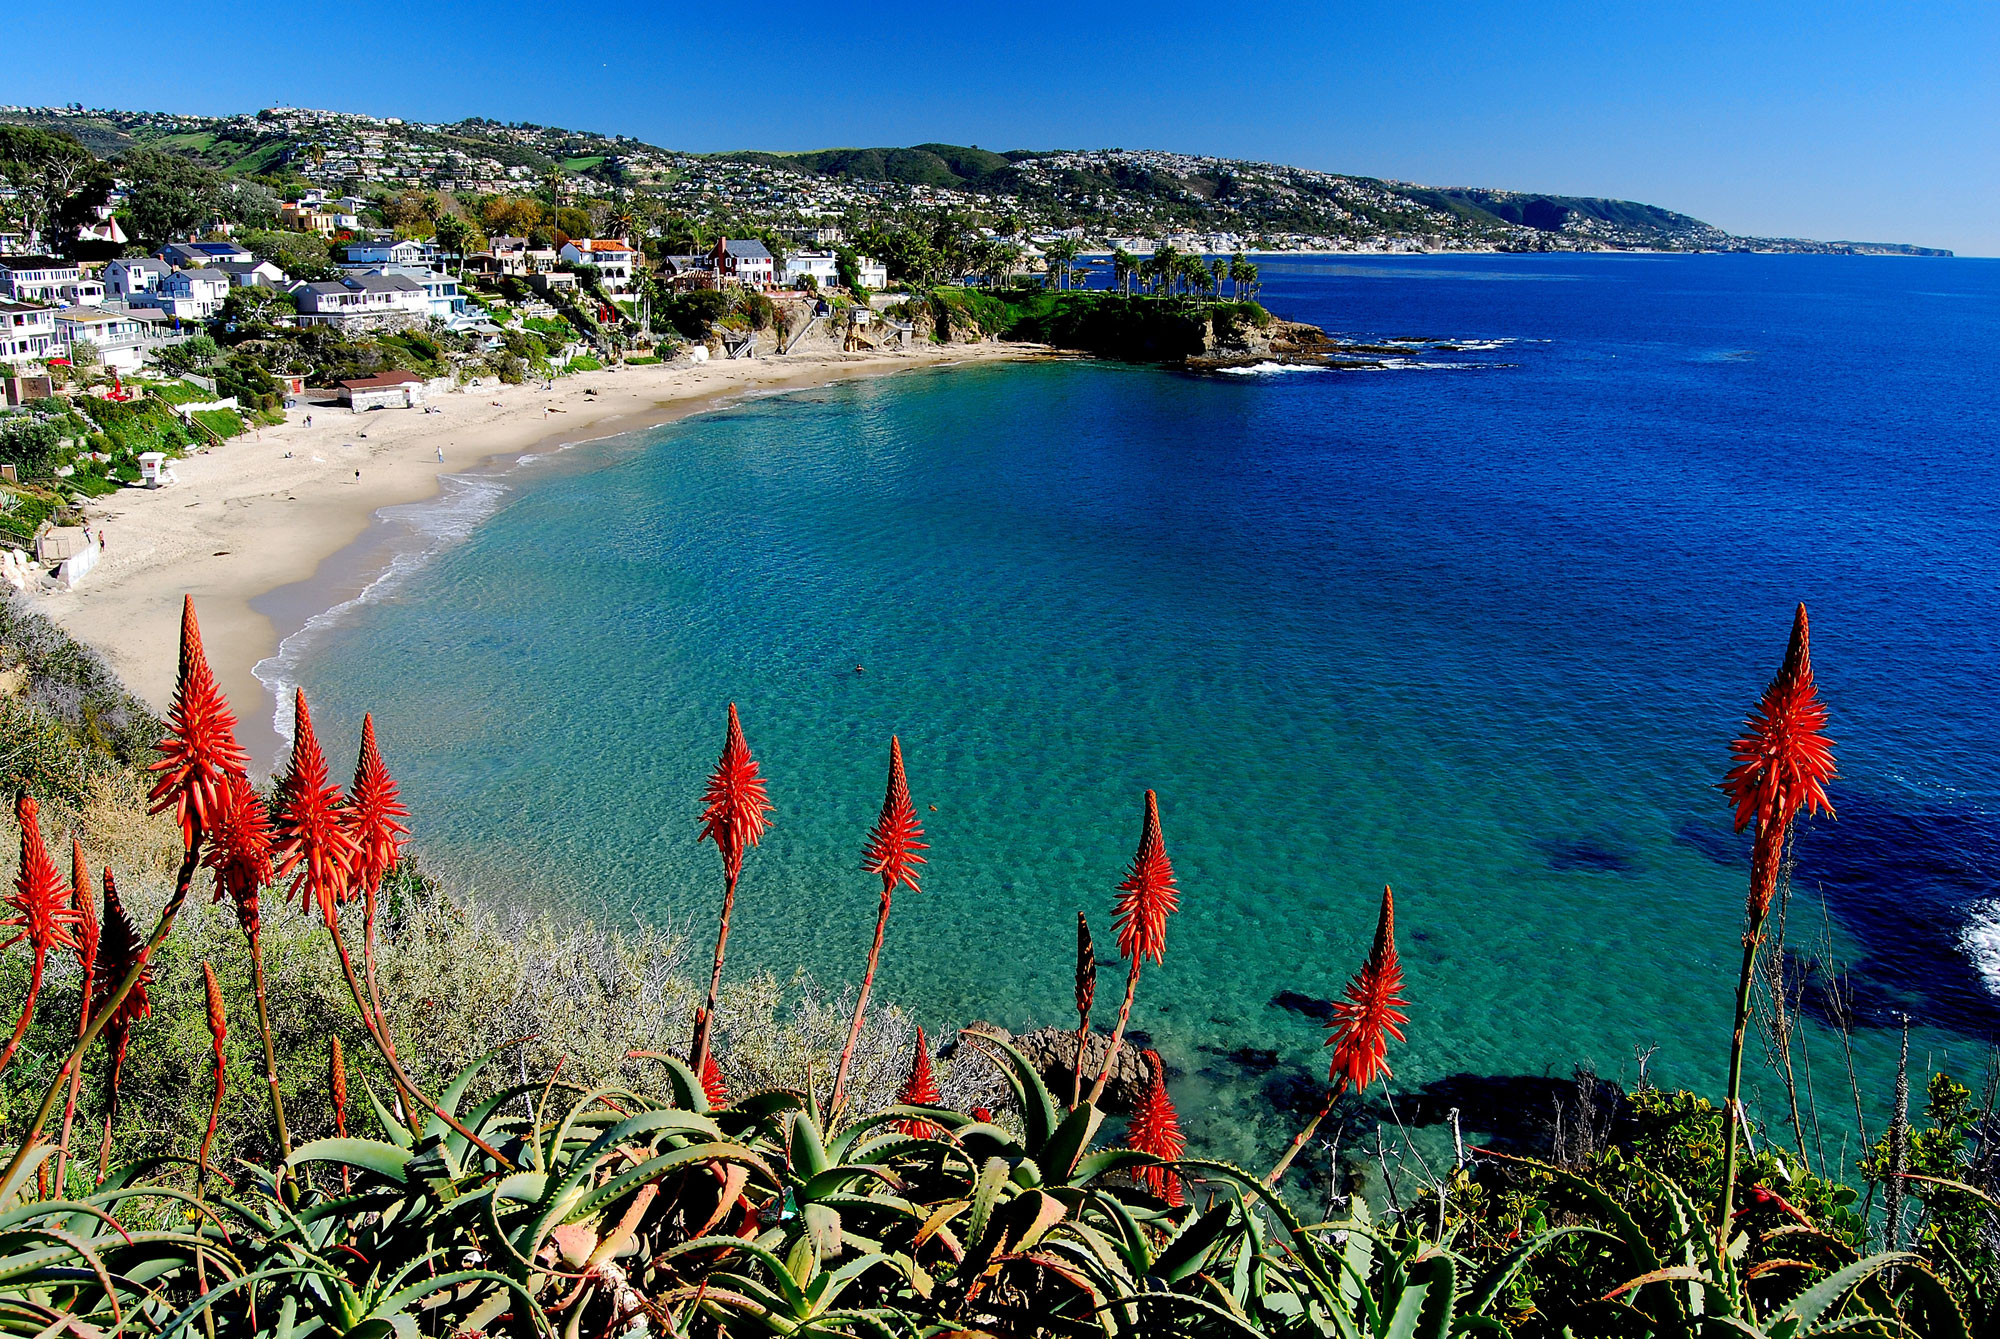 Laguna Beach Real Estate: Laguna Beach Homes For Sale